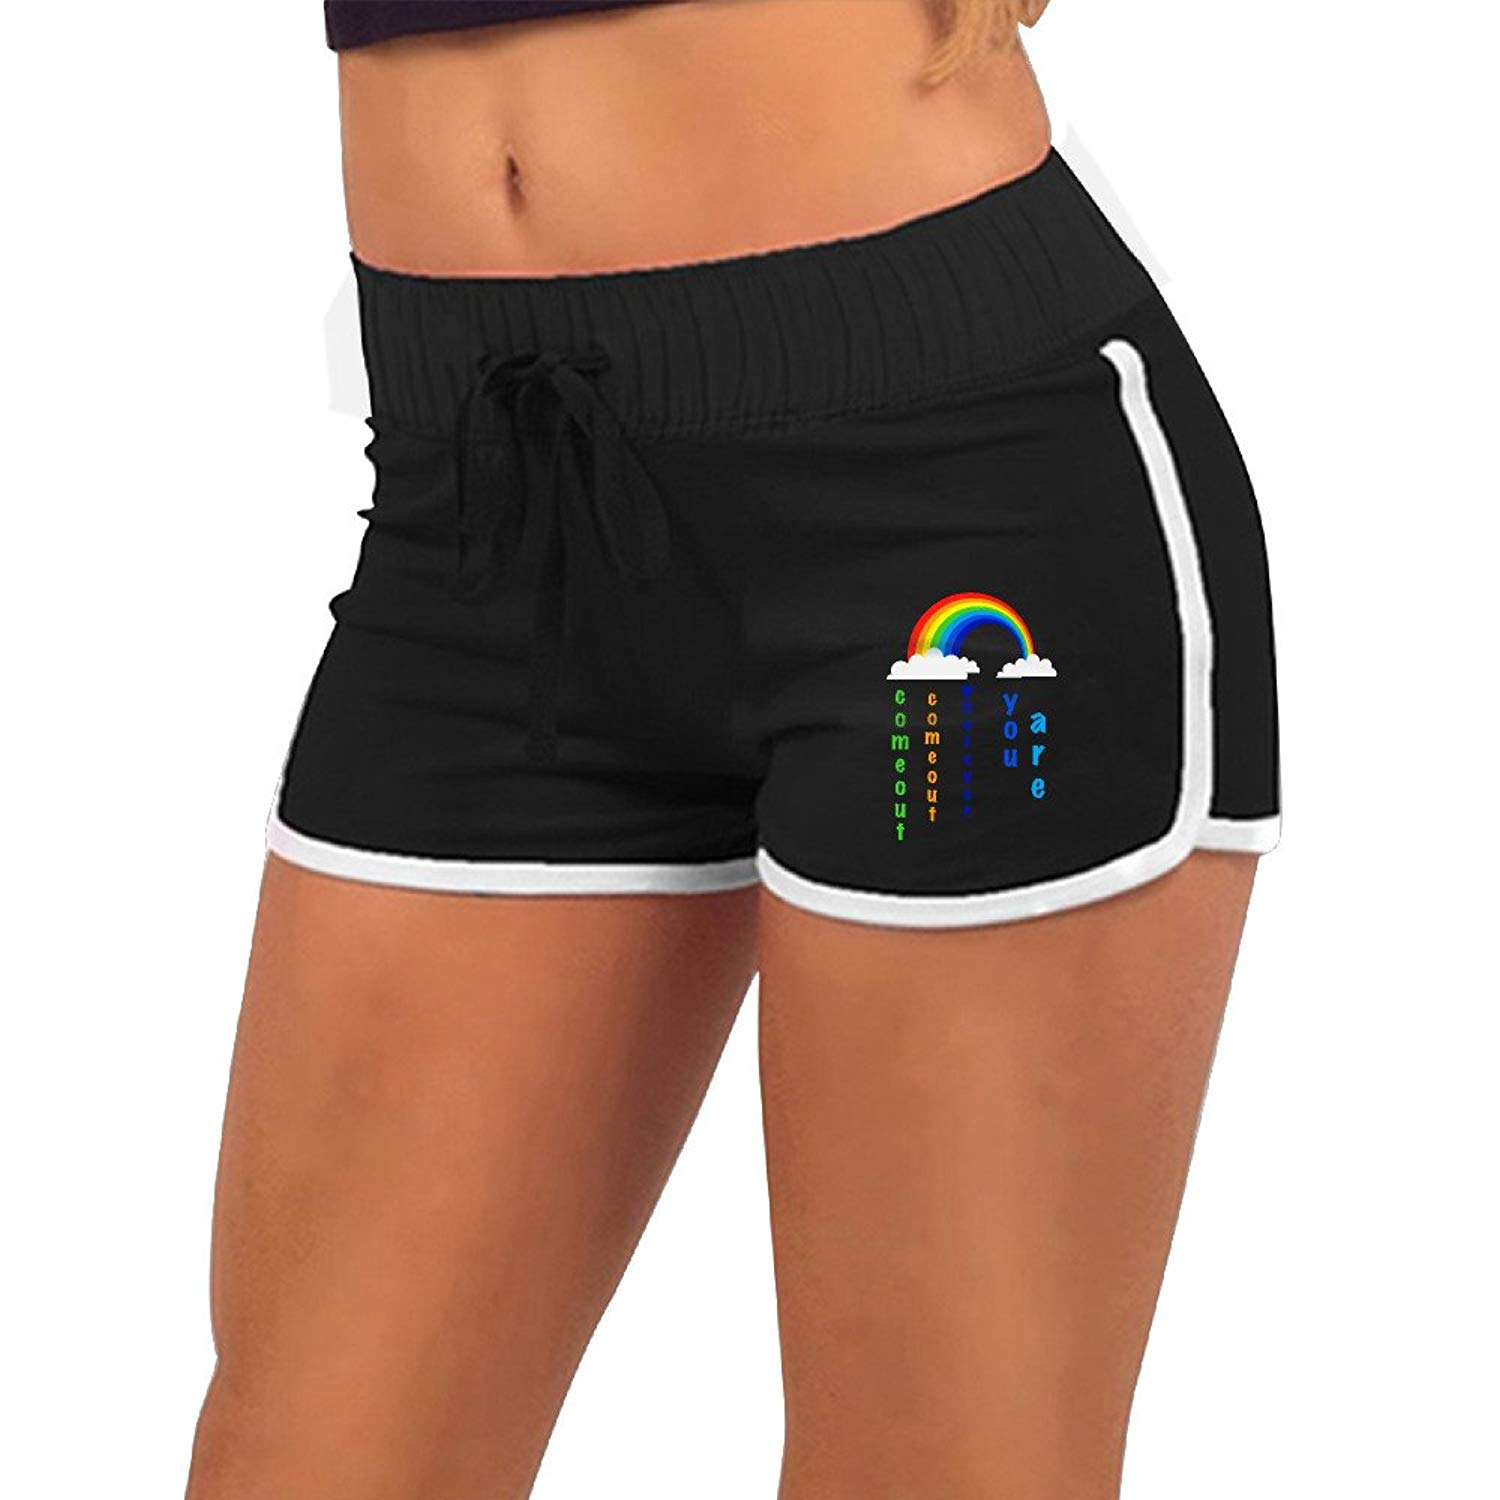 5fb5f068a0 Get Quotations · New Summer Pants Women GirlPro Gay Lesbian Marriage Come  Out Wherever You Are Gay PrideSports Shorts